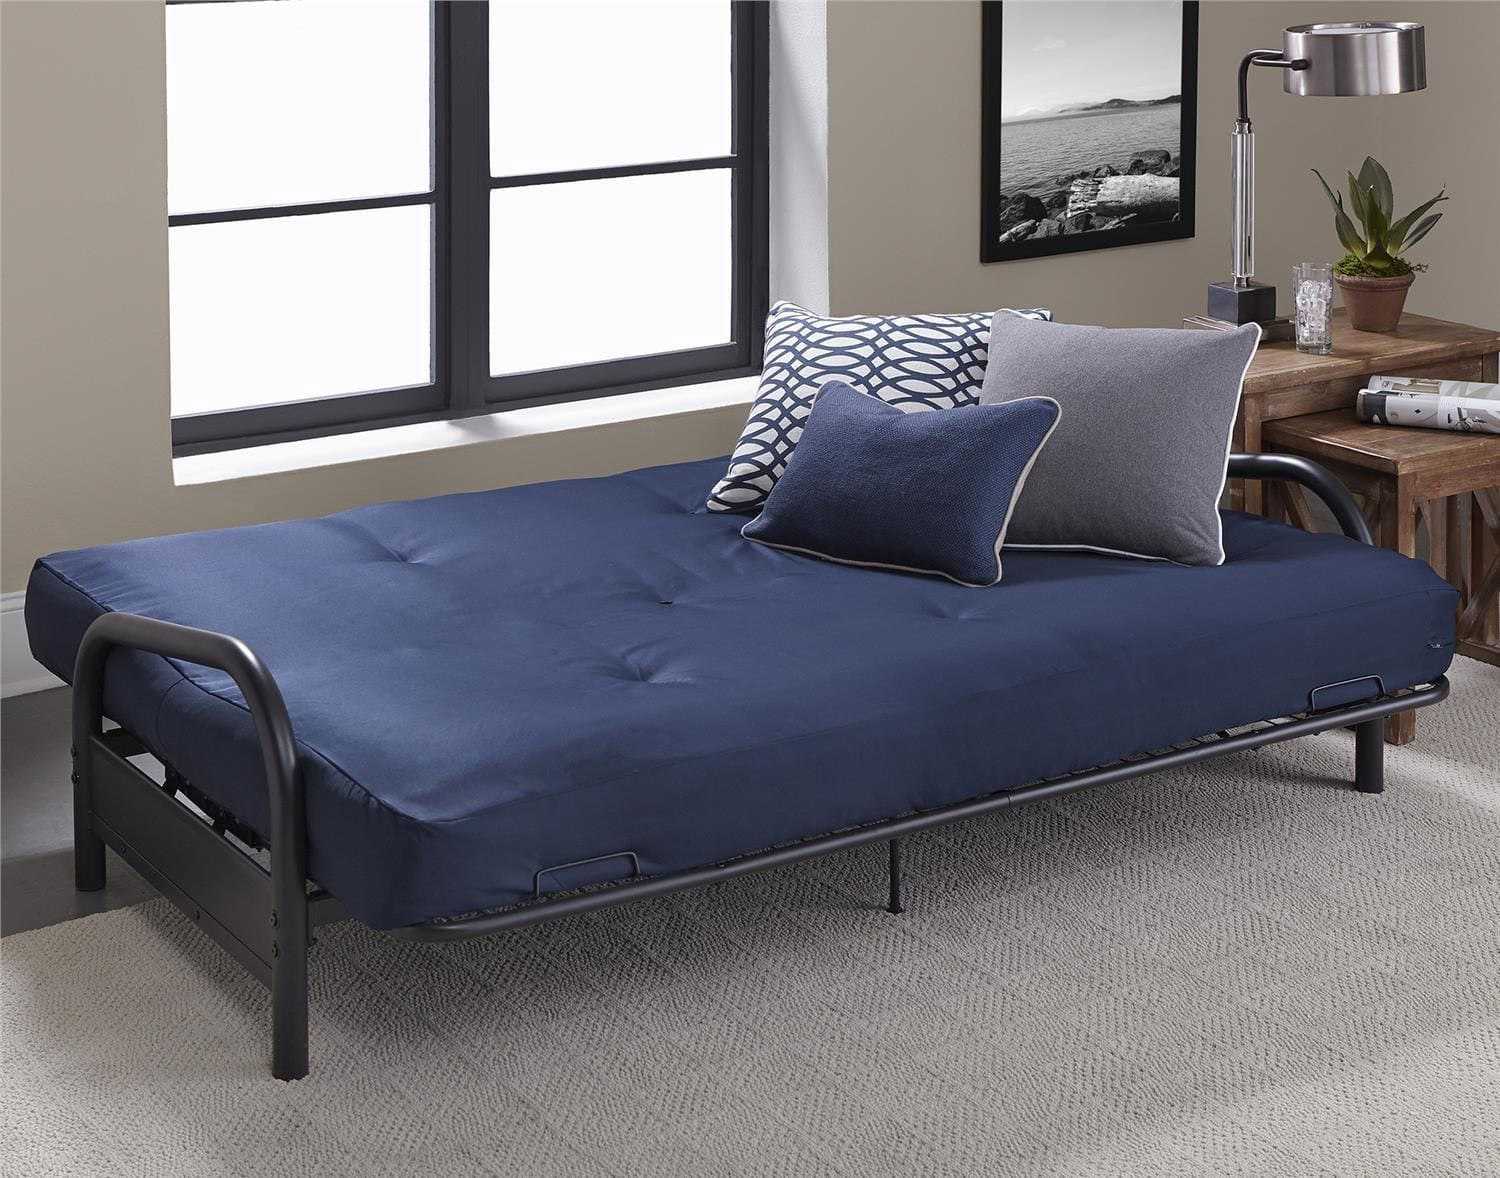 Best Futon Mattress Review by www.snoremagazine.com